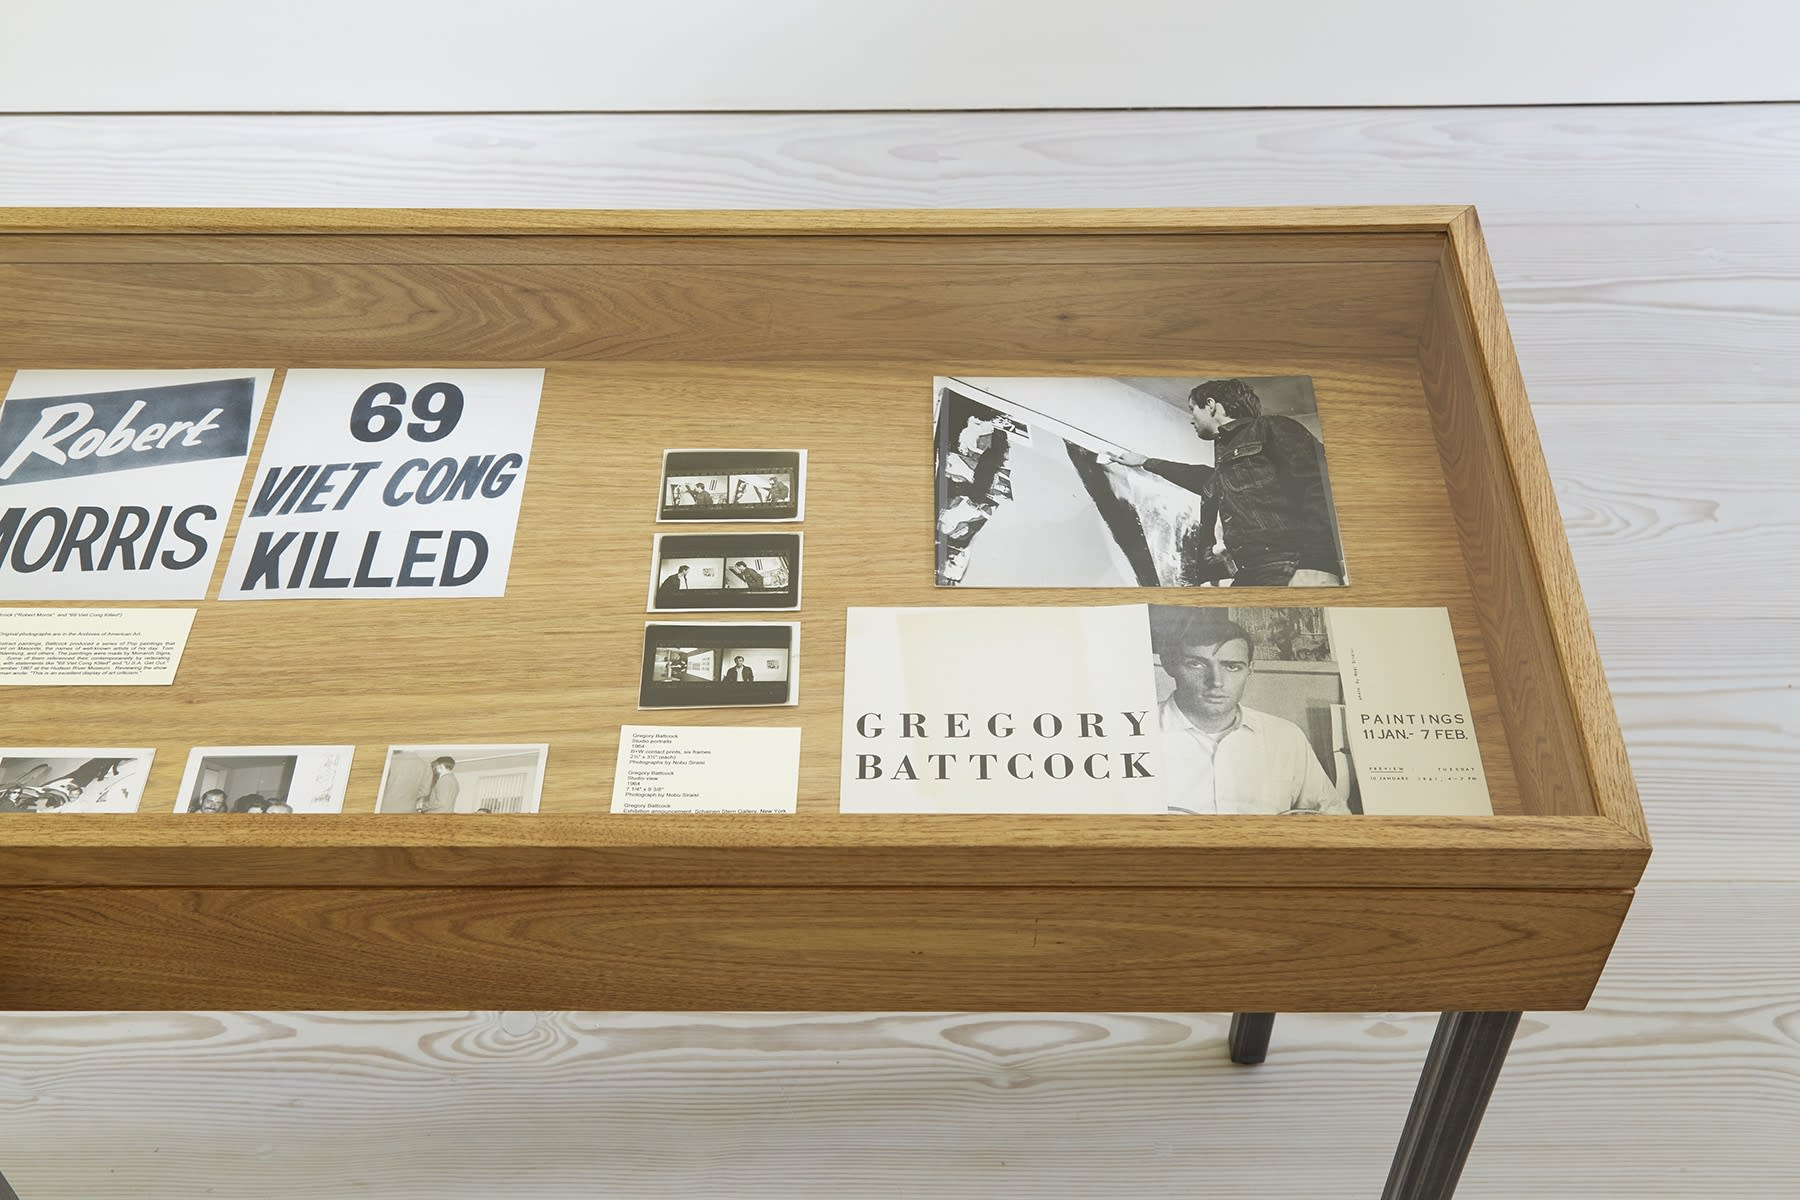 In a display case, various ads and newspaper headlines lie (Robert Morris, 69 VIET CONG KILLED), along with photos of painter Gregory Battcock, and a flier for an opening of his.